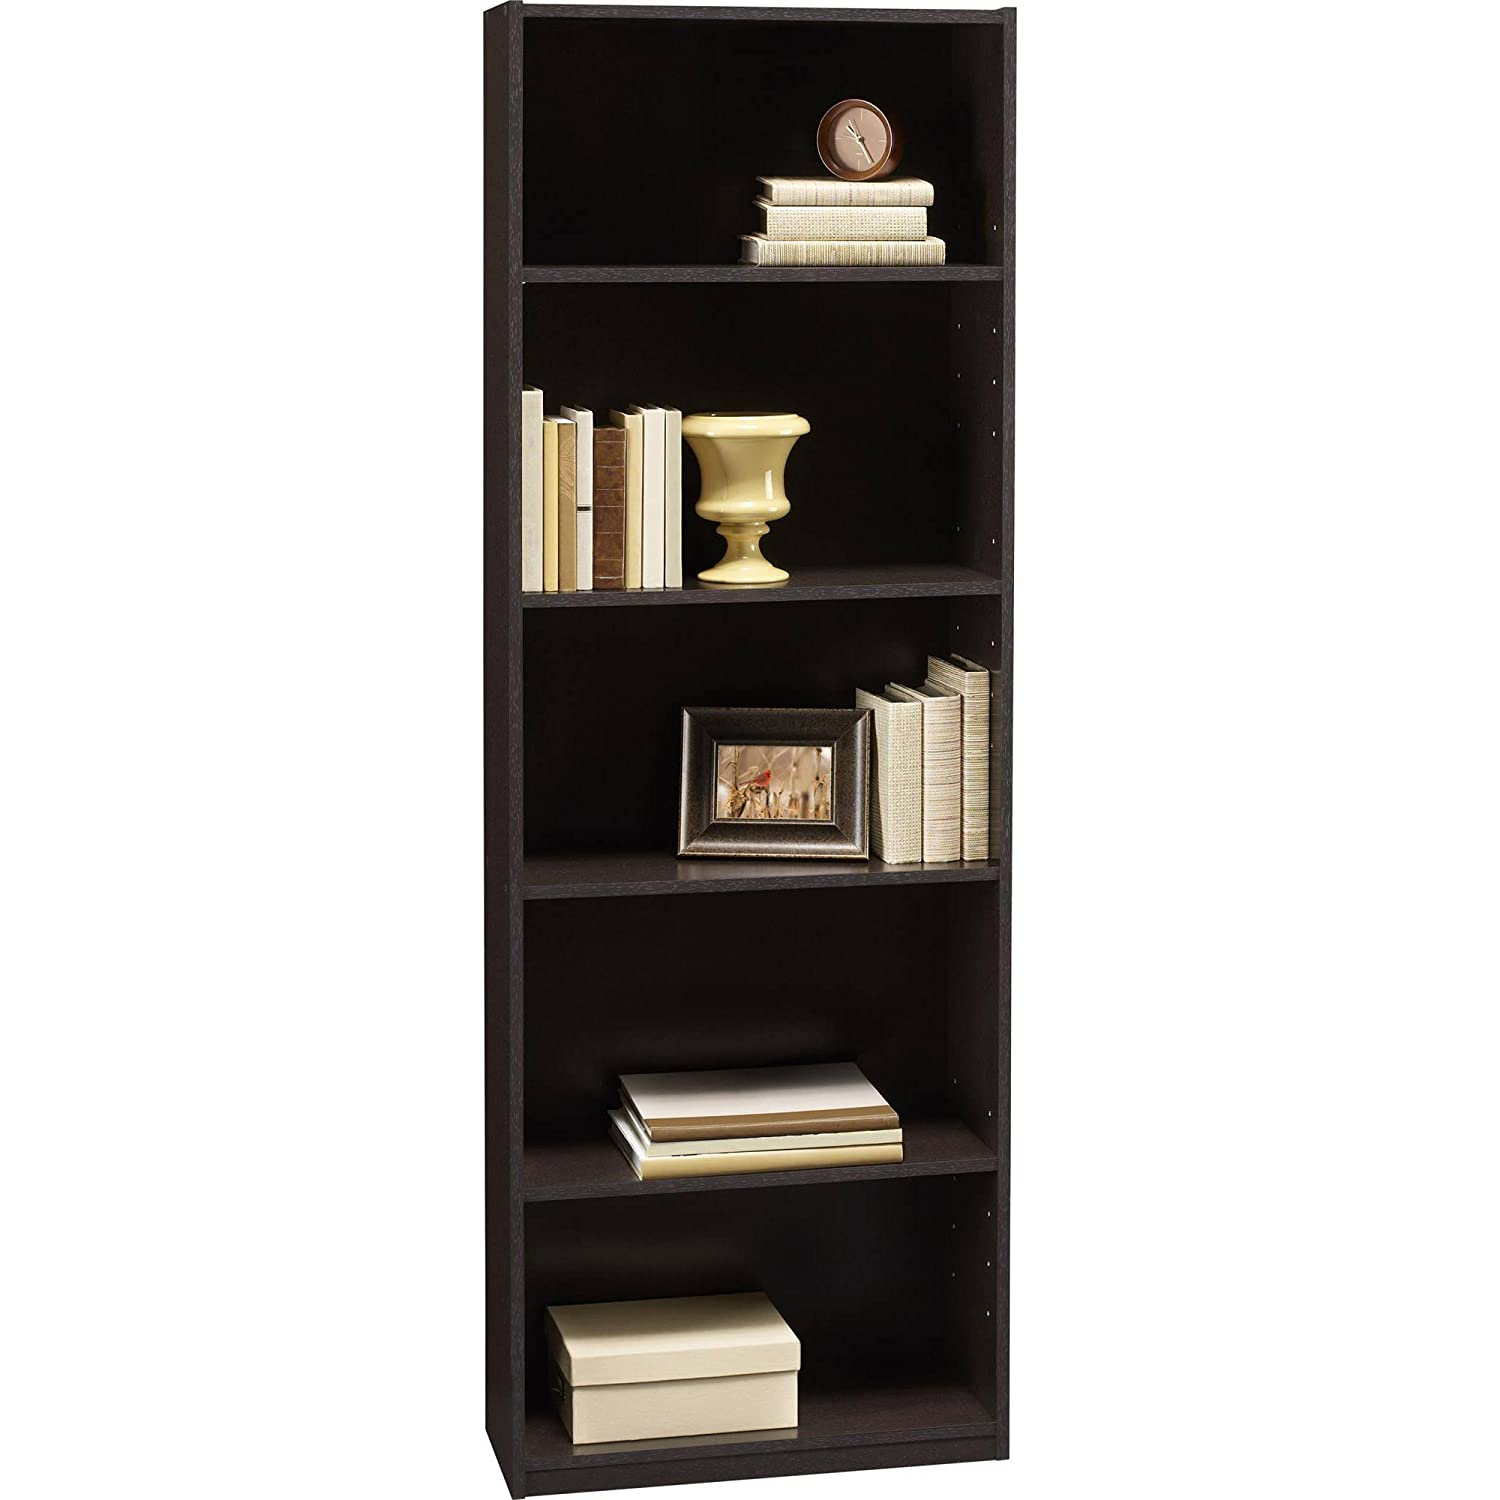 Amazon Ameriwood 5 Shelf Bookcases Set Of 2 Espresso Kitchen Dining